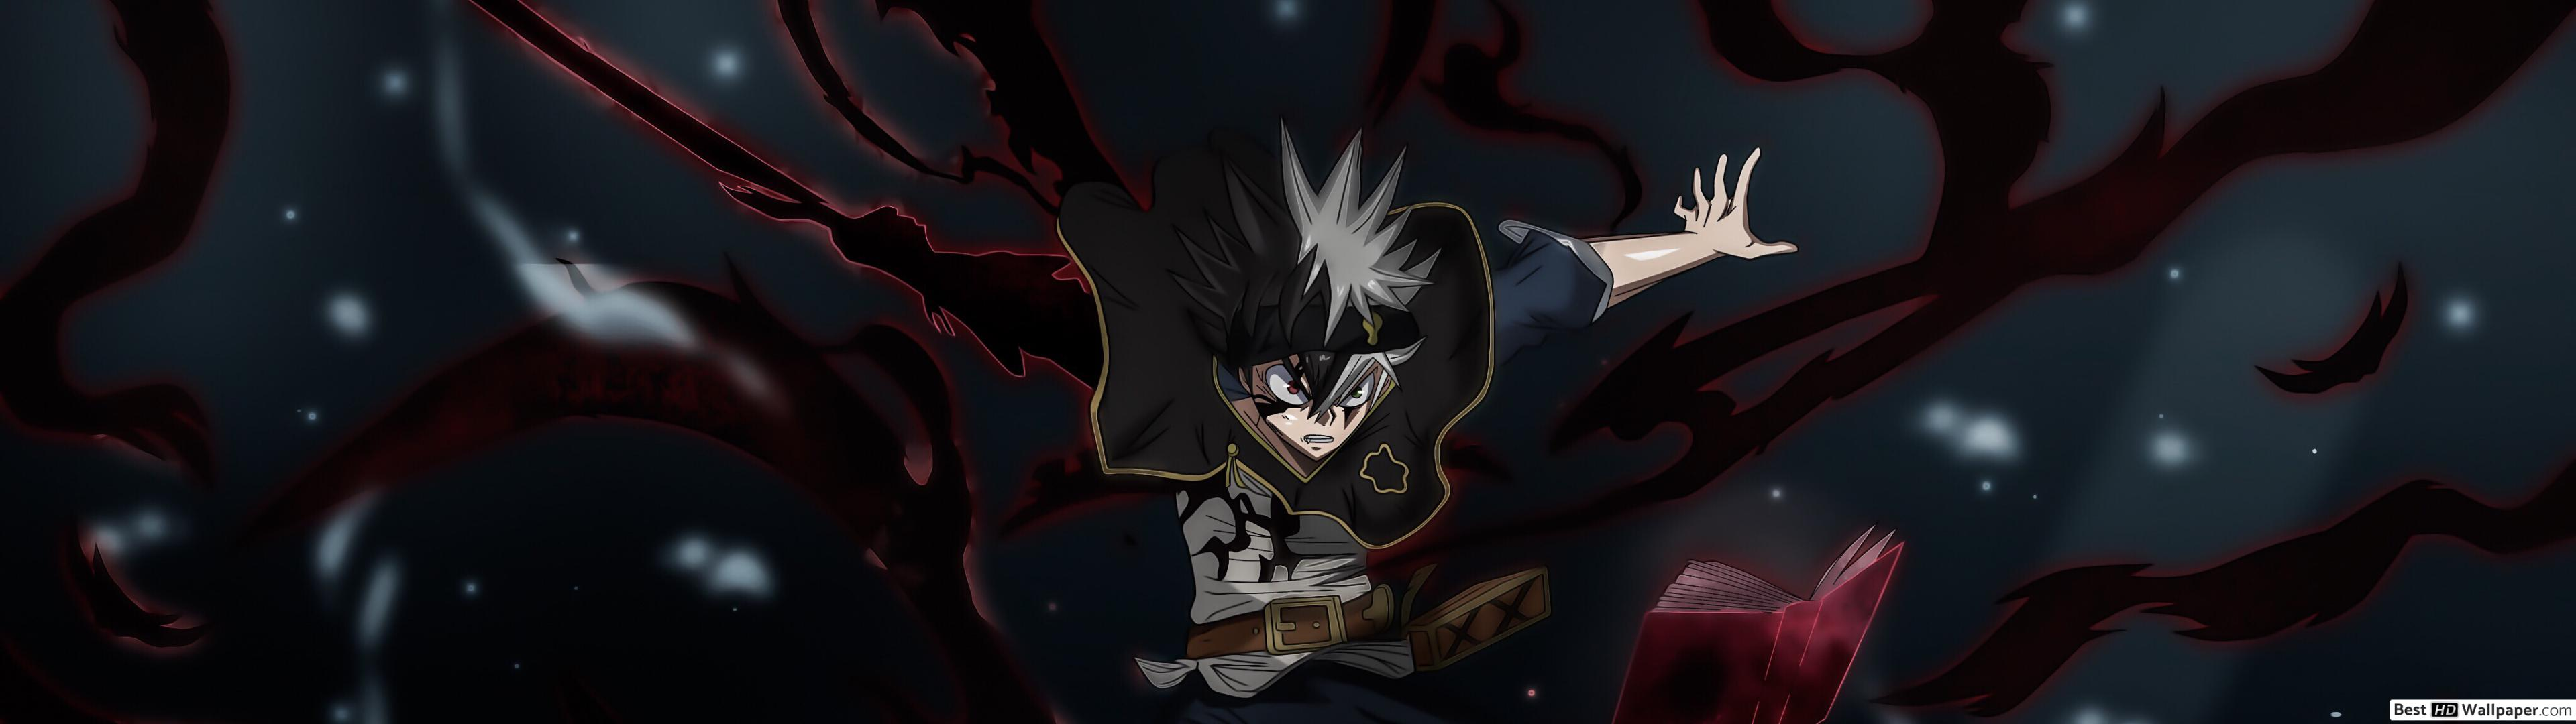 Black Clover Backgrounds Posted By Zoey Peltier